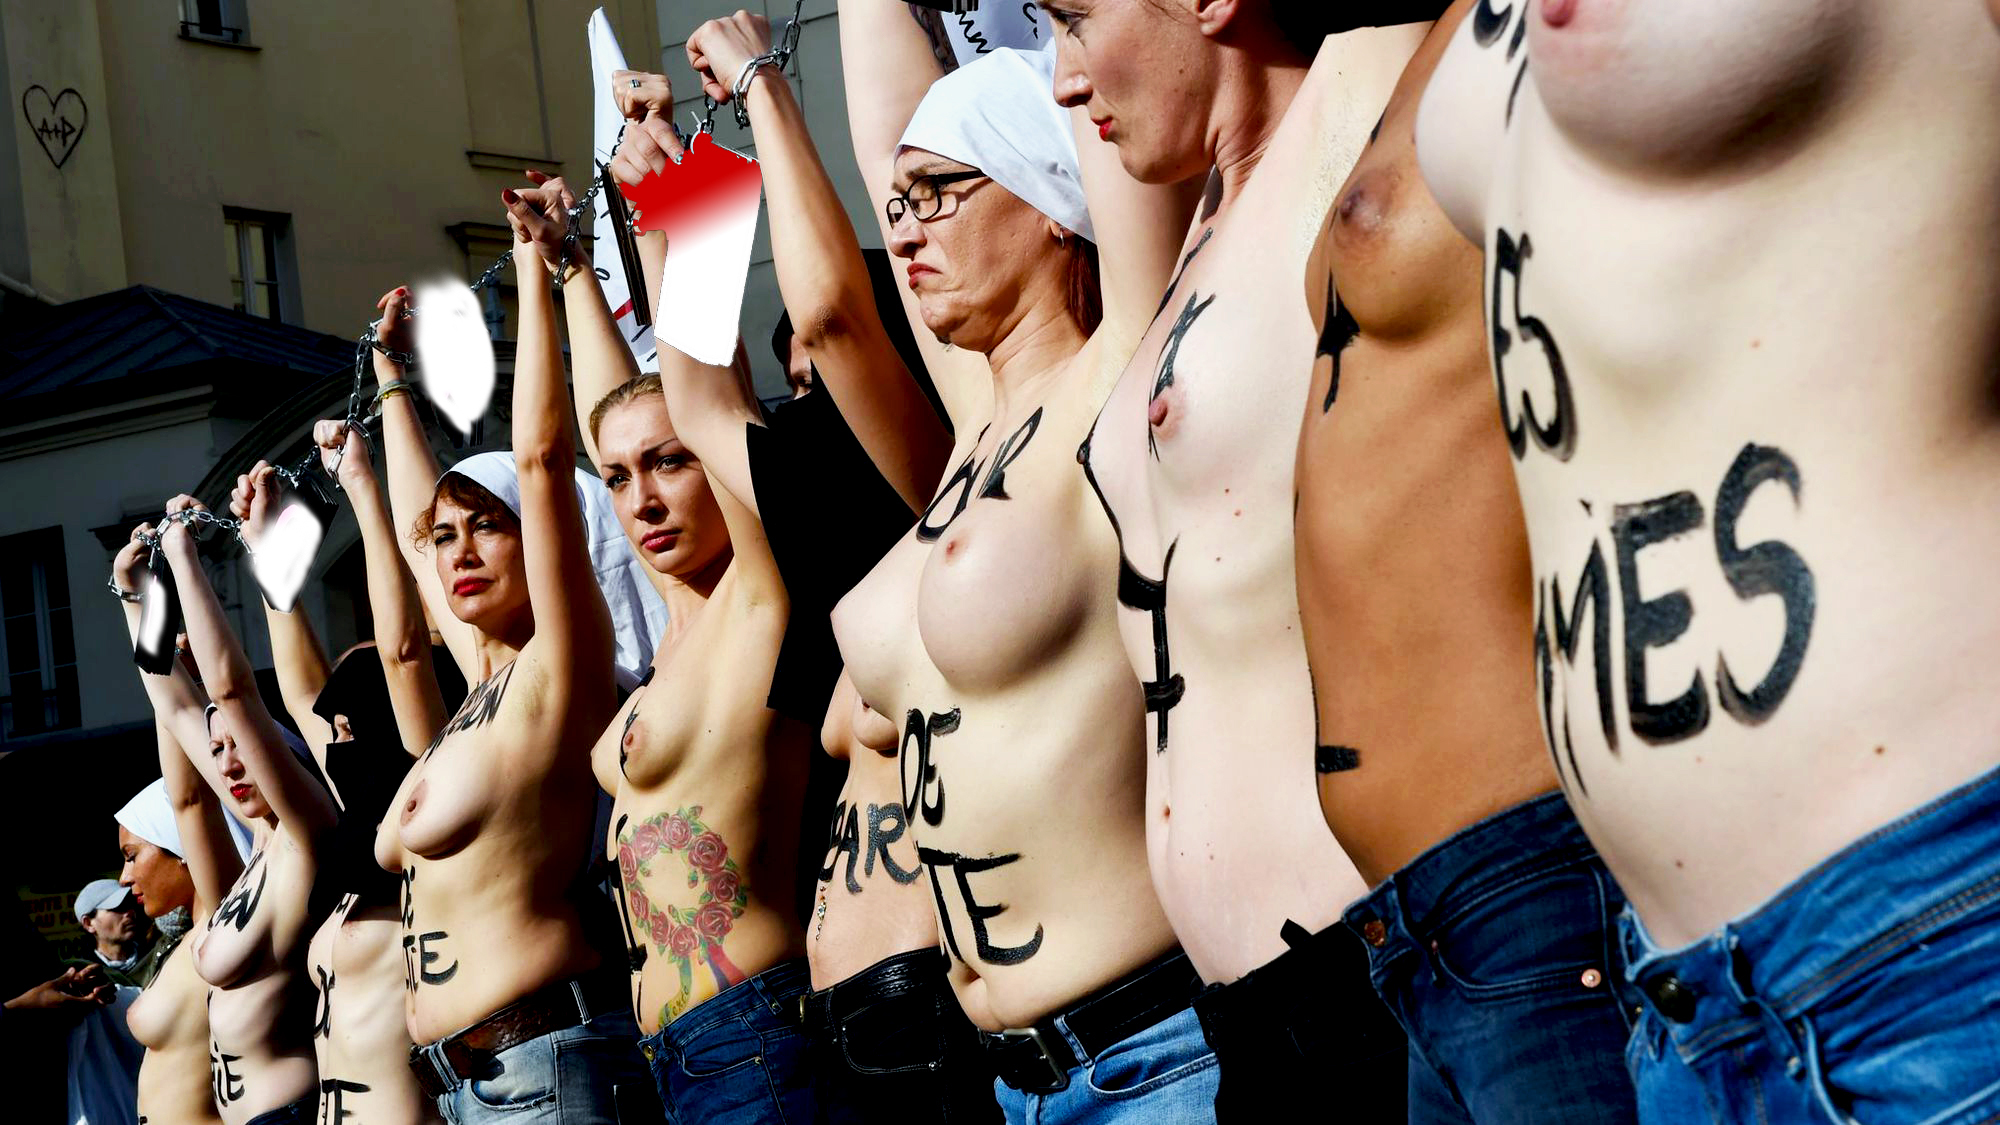 Topless beachgoers protest nh town's discriminatory ban